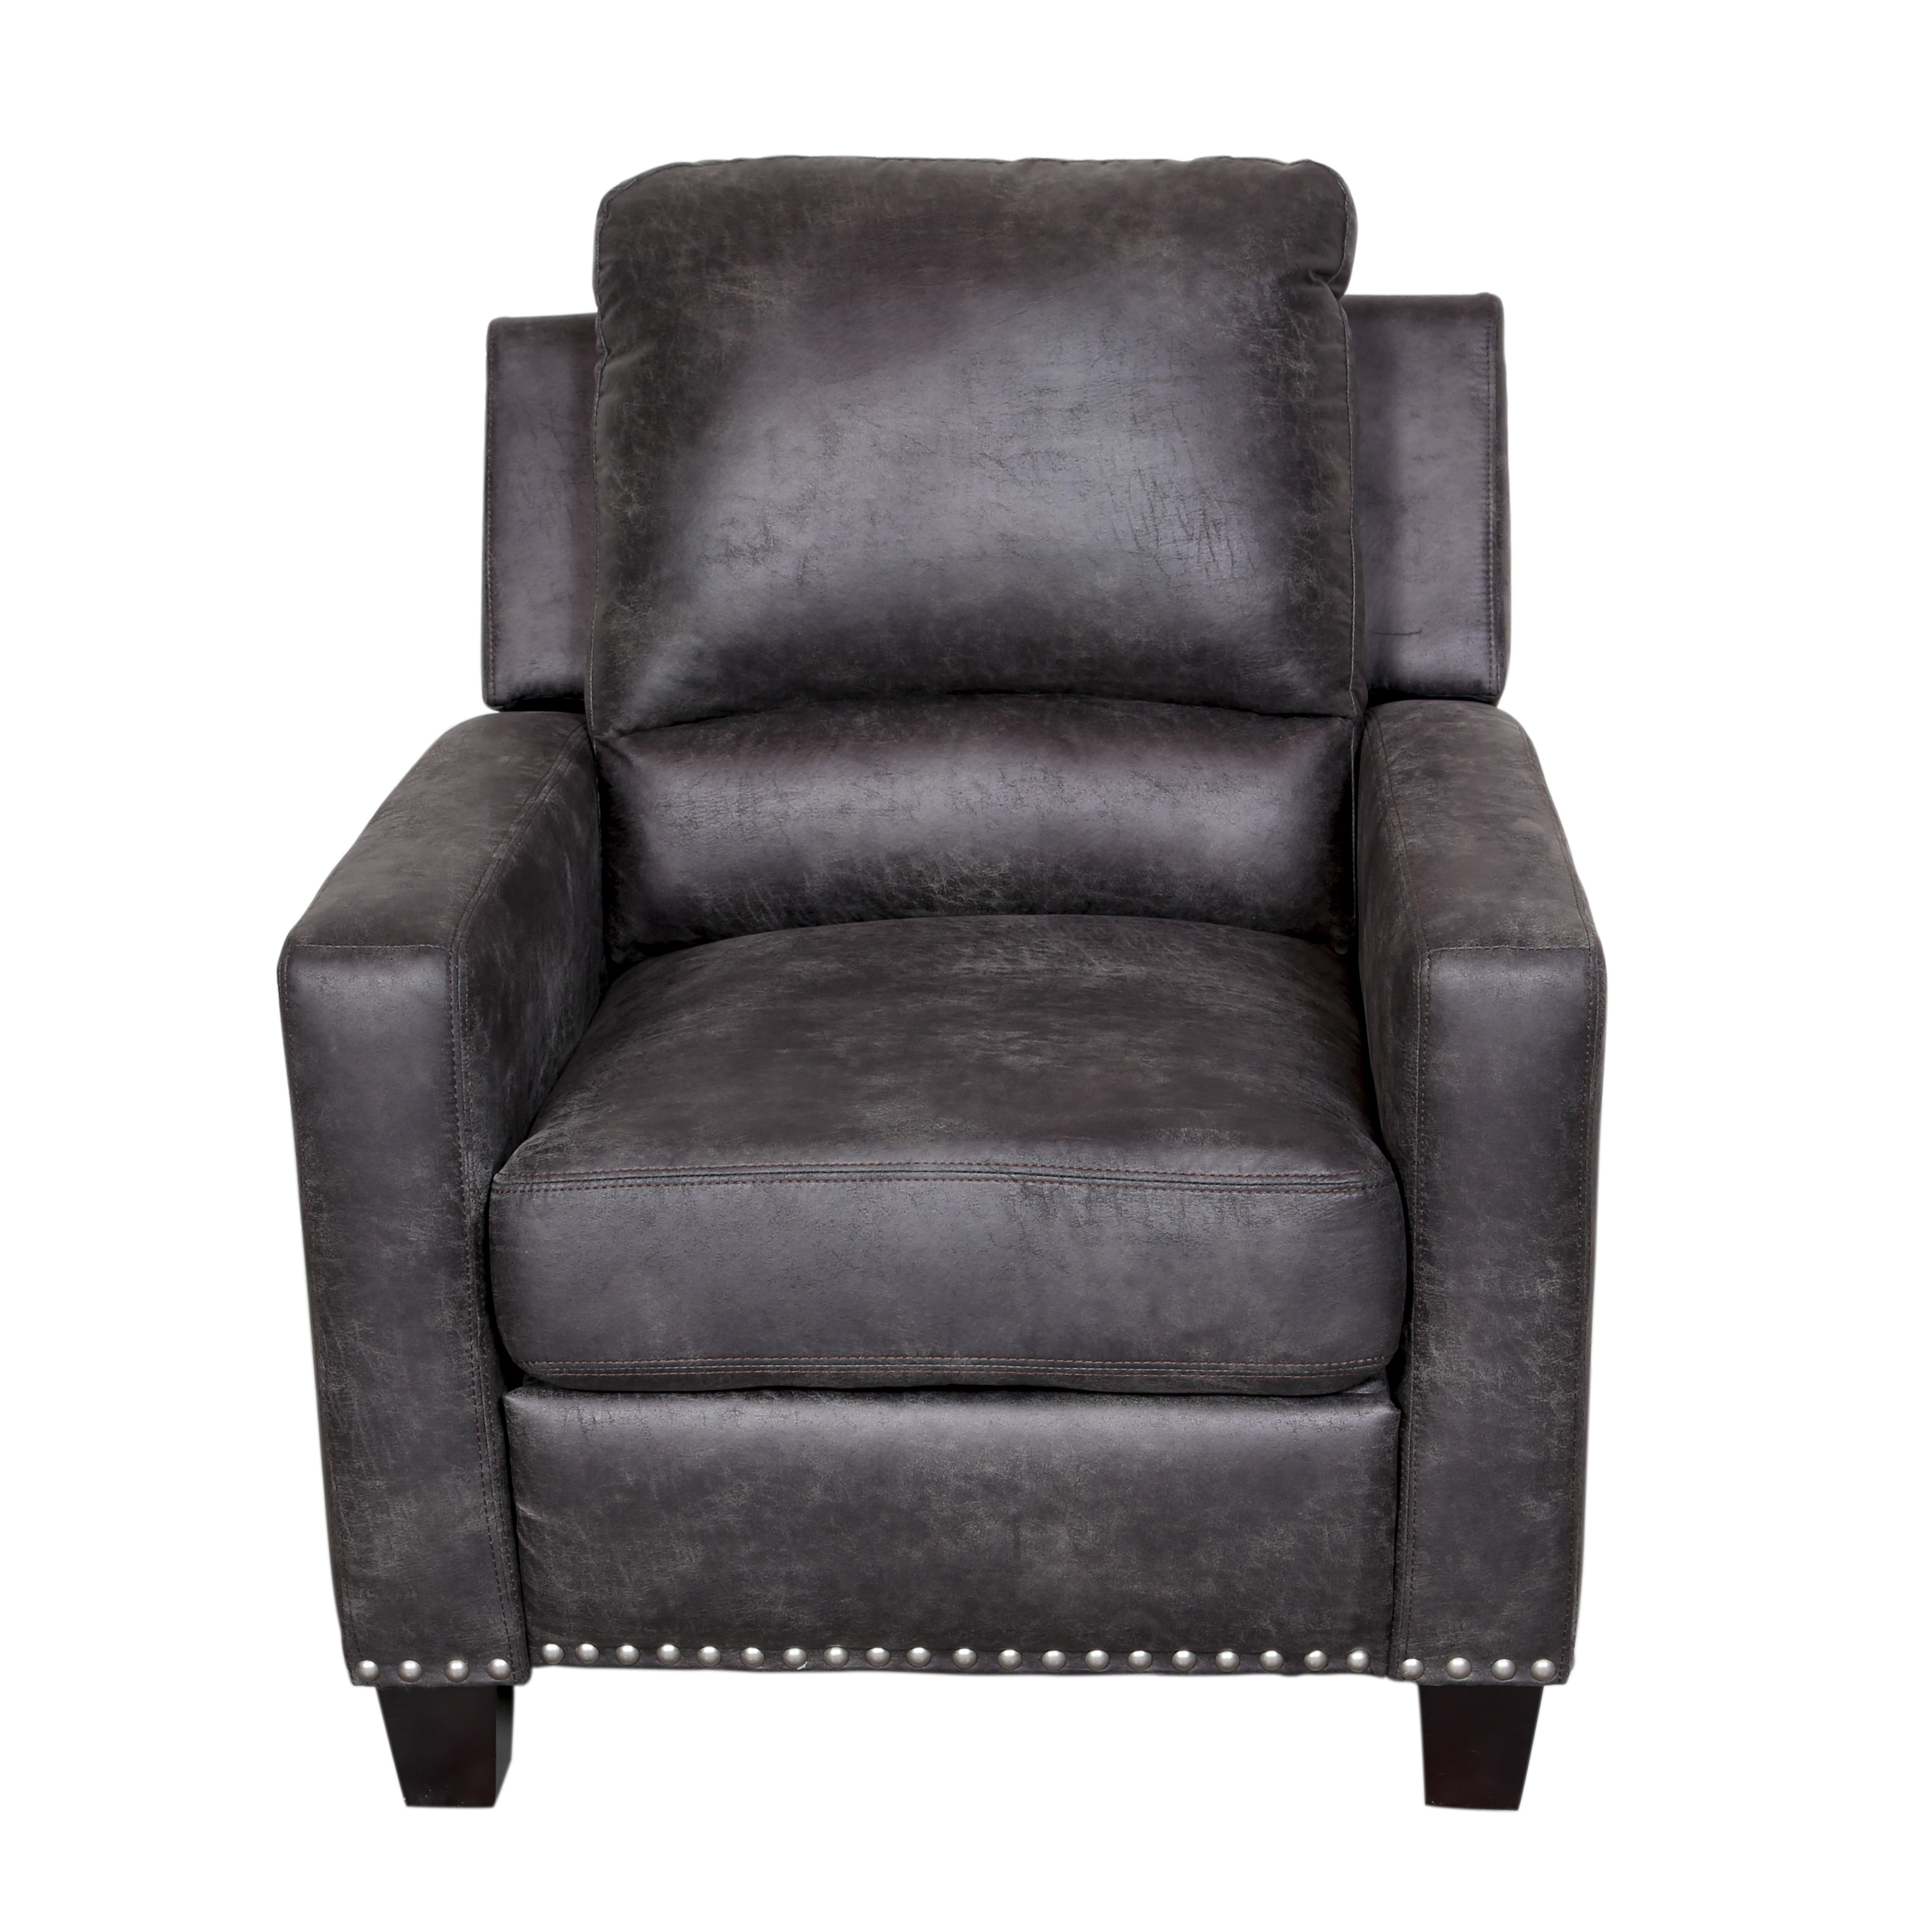 Exceptionnel Shop Porter Grayson Soft Leatherlike Grey Microfiber Reclining Chair With  Silver Nail Head Trim   Free Shipping Today   Overstock.com   11600105